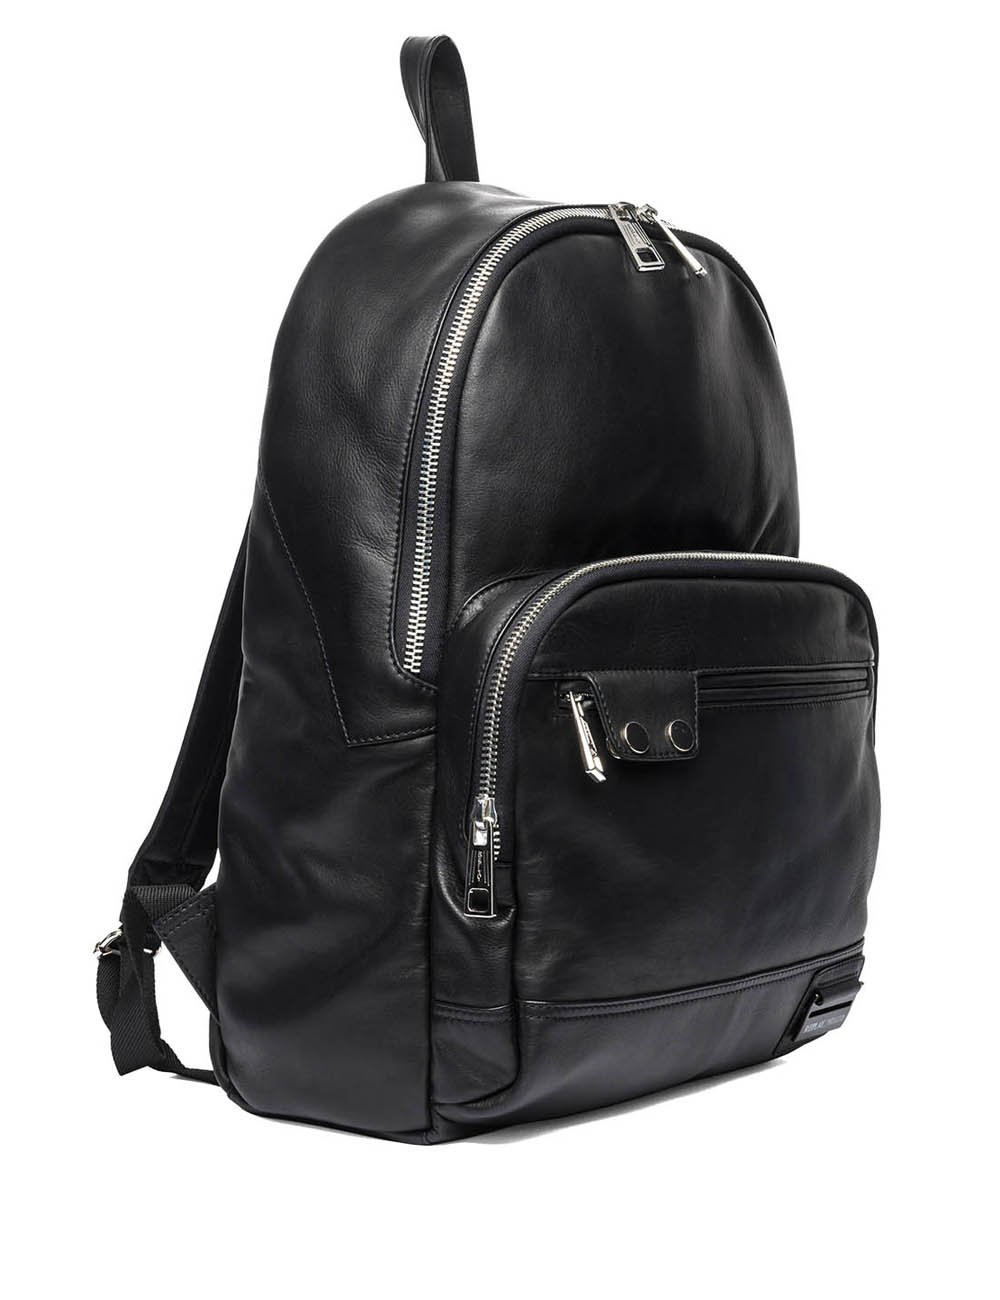 Replay Men's Leather Black Backpack